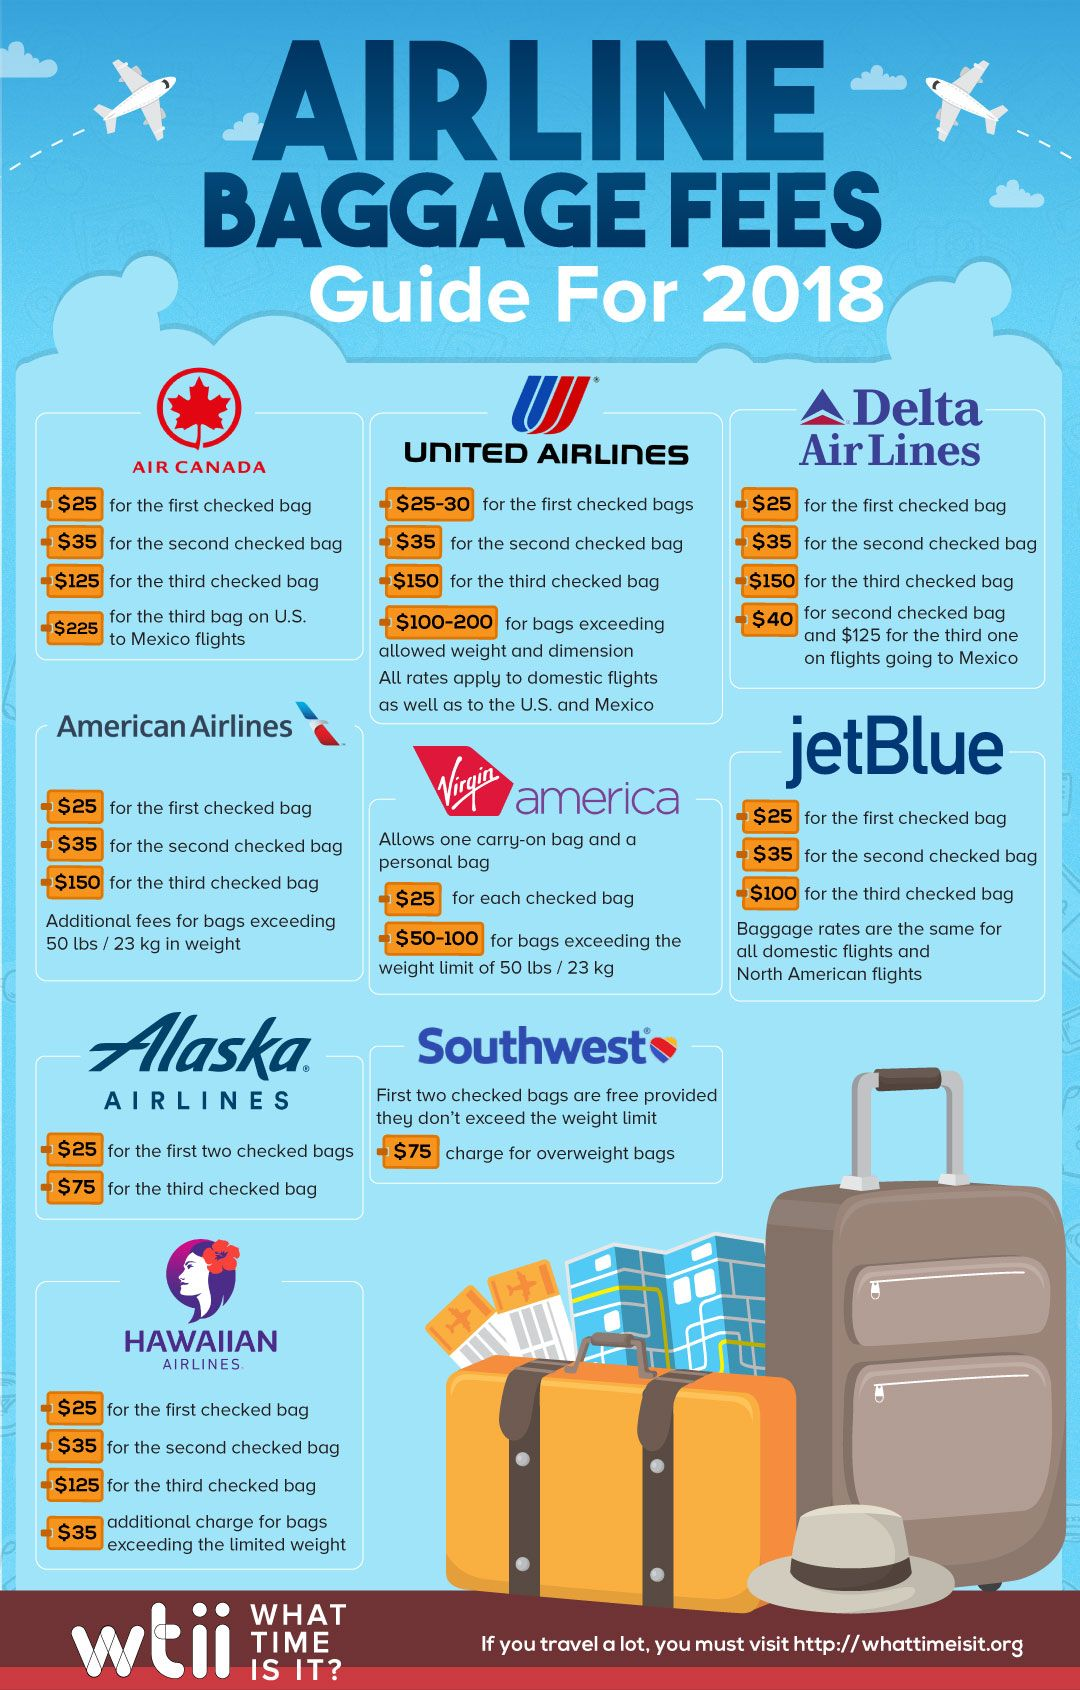 c445096e6e45 Airline Baggage Fees Guide for 2018